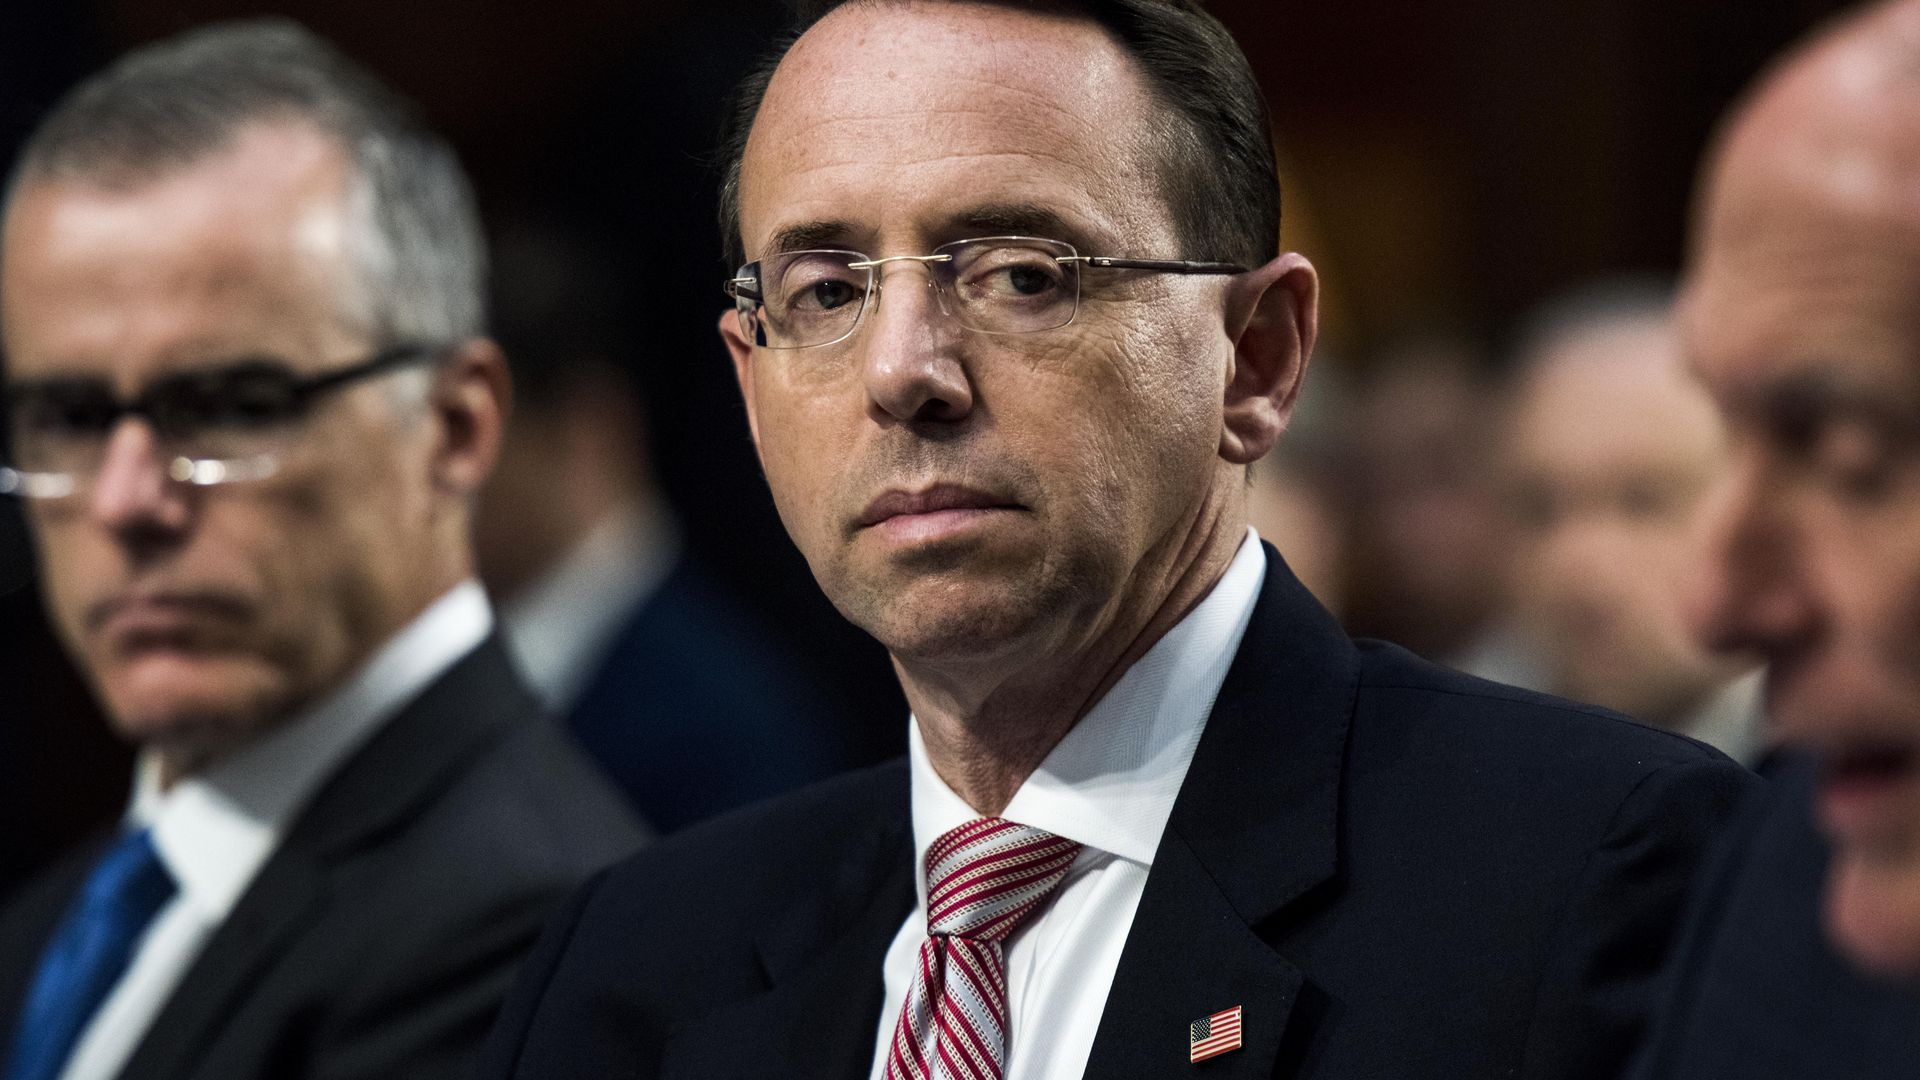 Andy McCabe and Rod Rosenstein